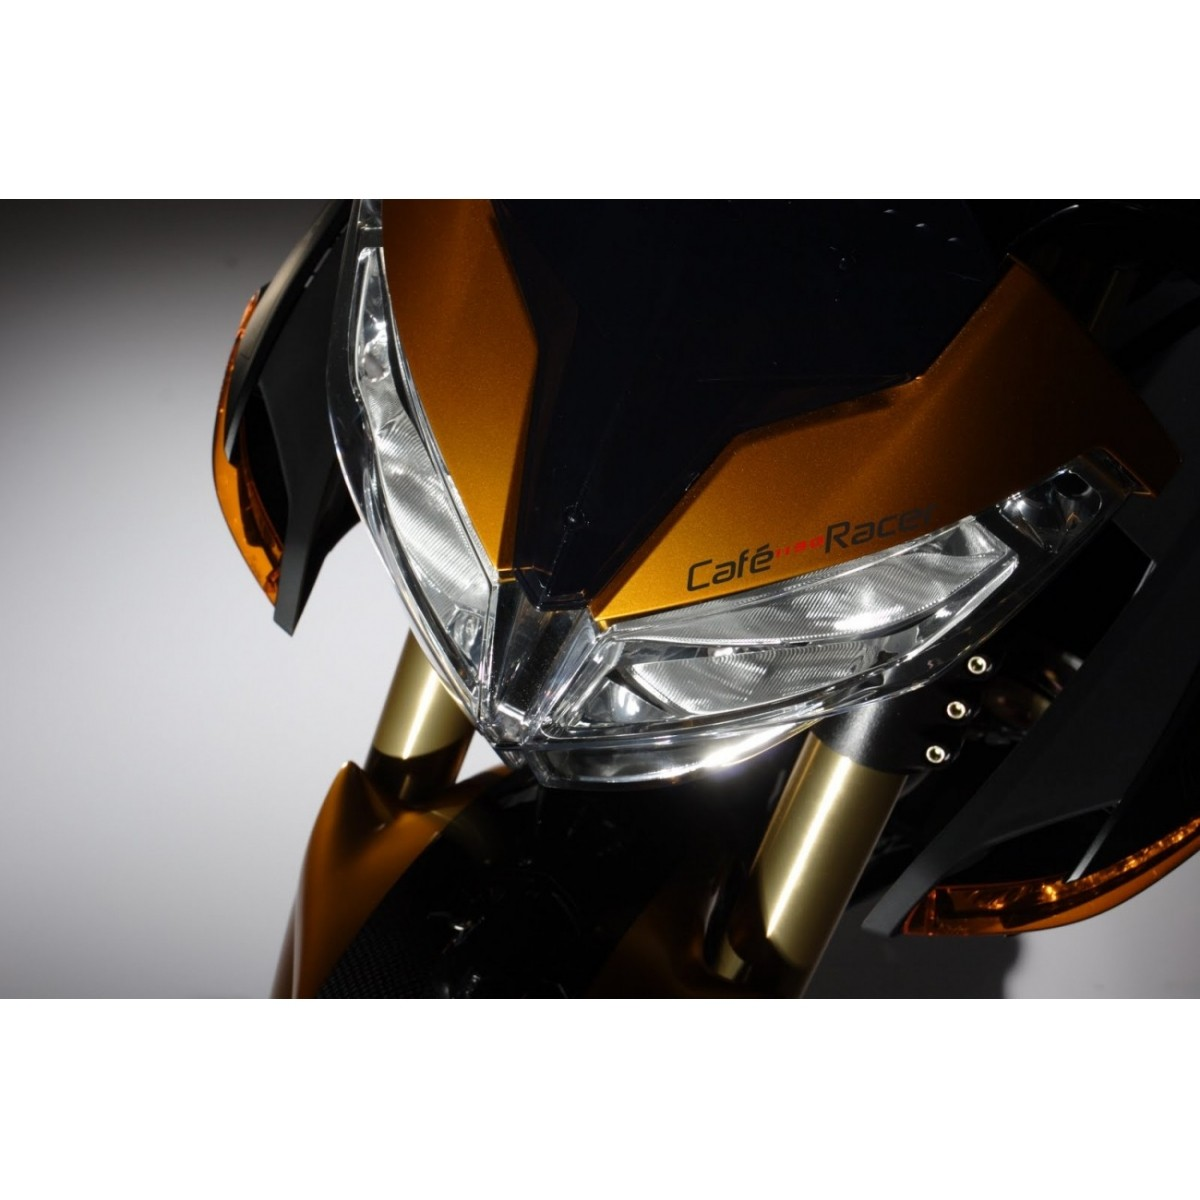 Kit Adesivos Benelli Tnt 1130 Cafe Racer Decalx